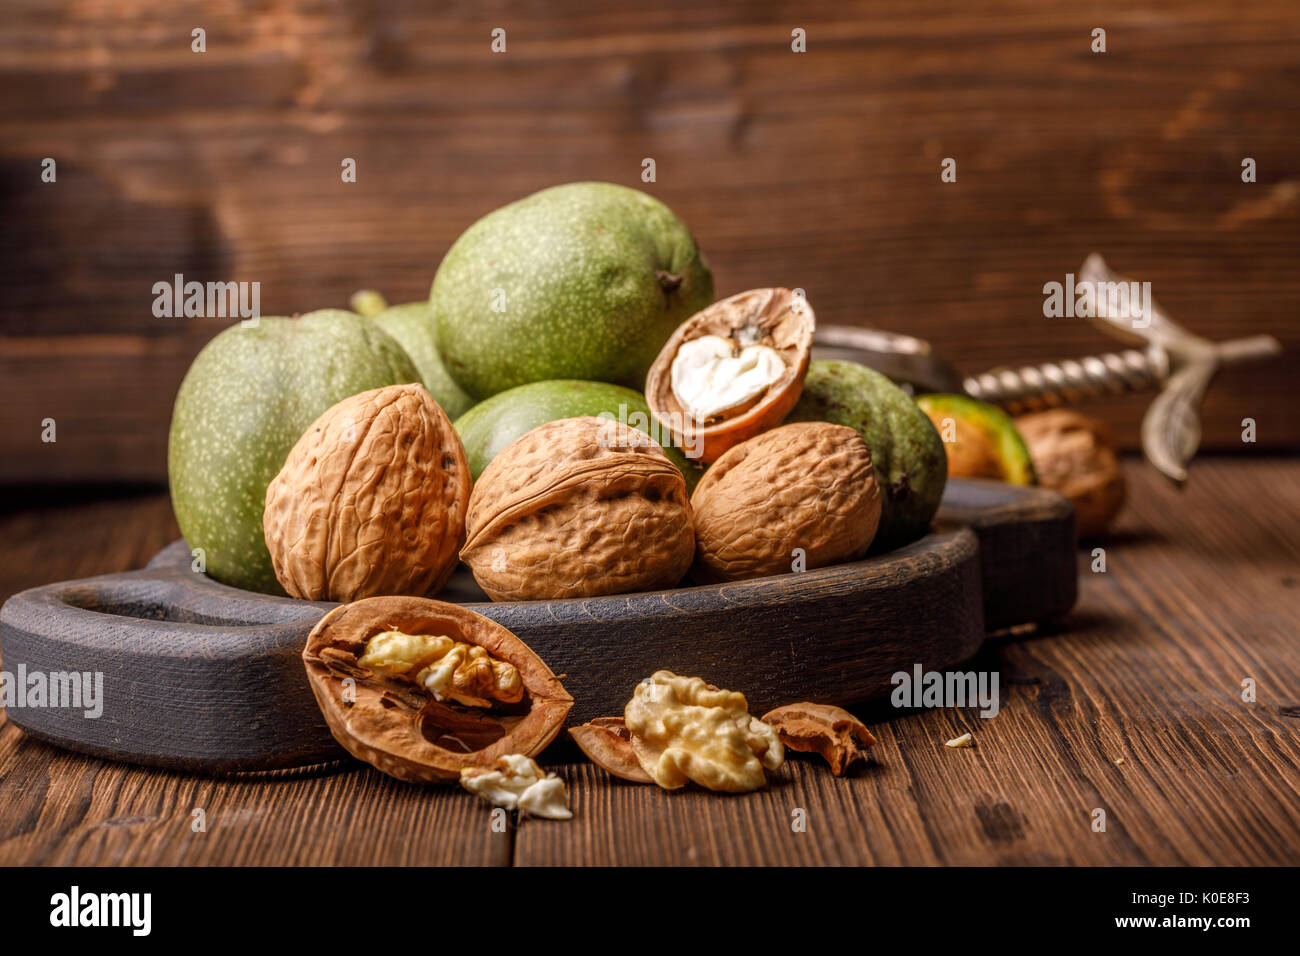 A handful of green young walnuts on a wooden background together with an old nutcracker. Nuts with shell and walnuts in green peel. - Stock Image